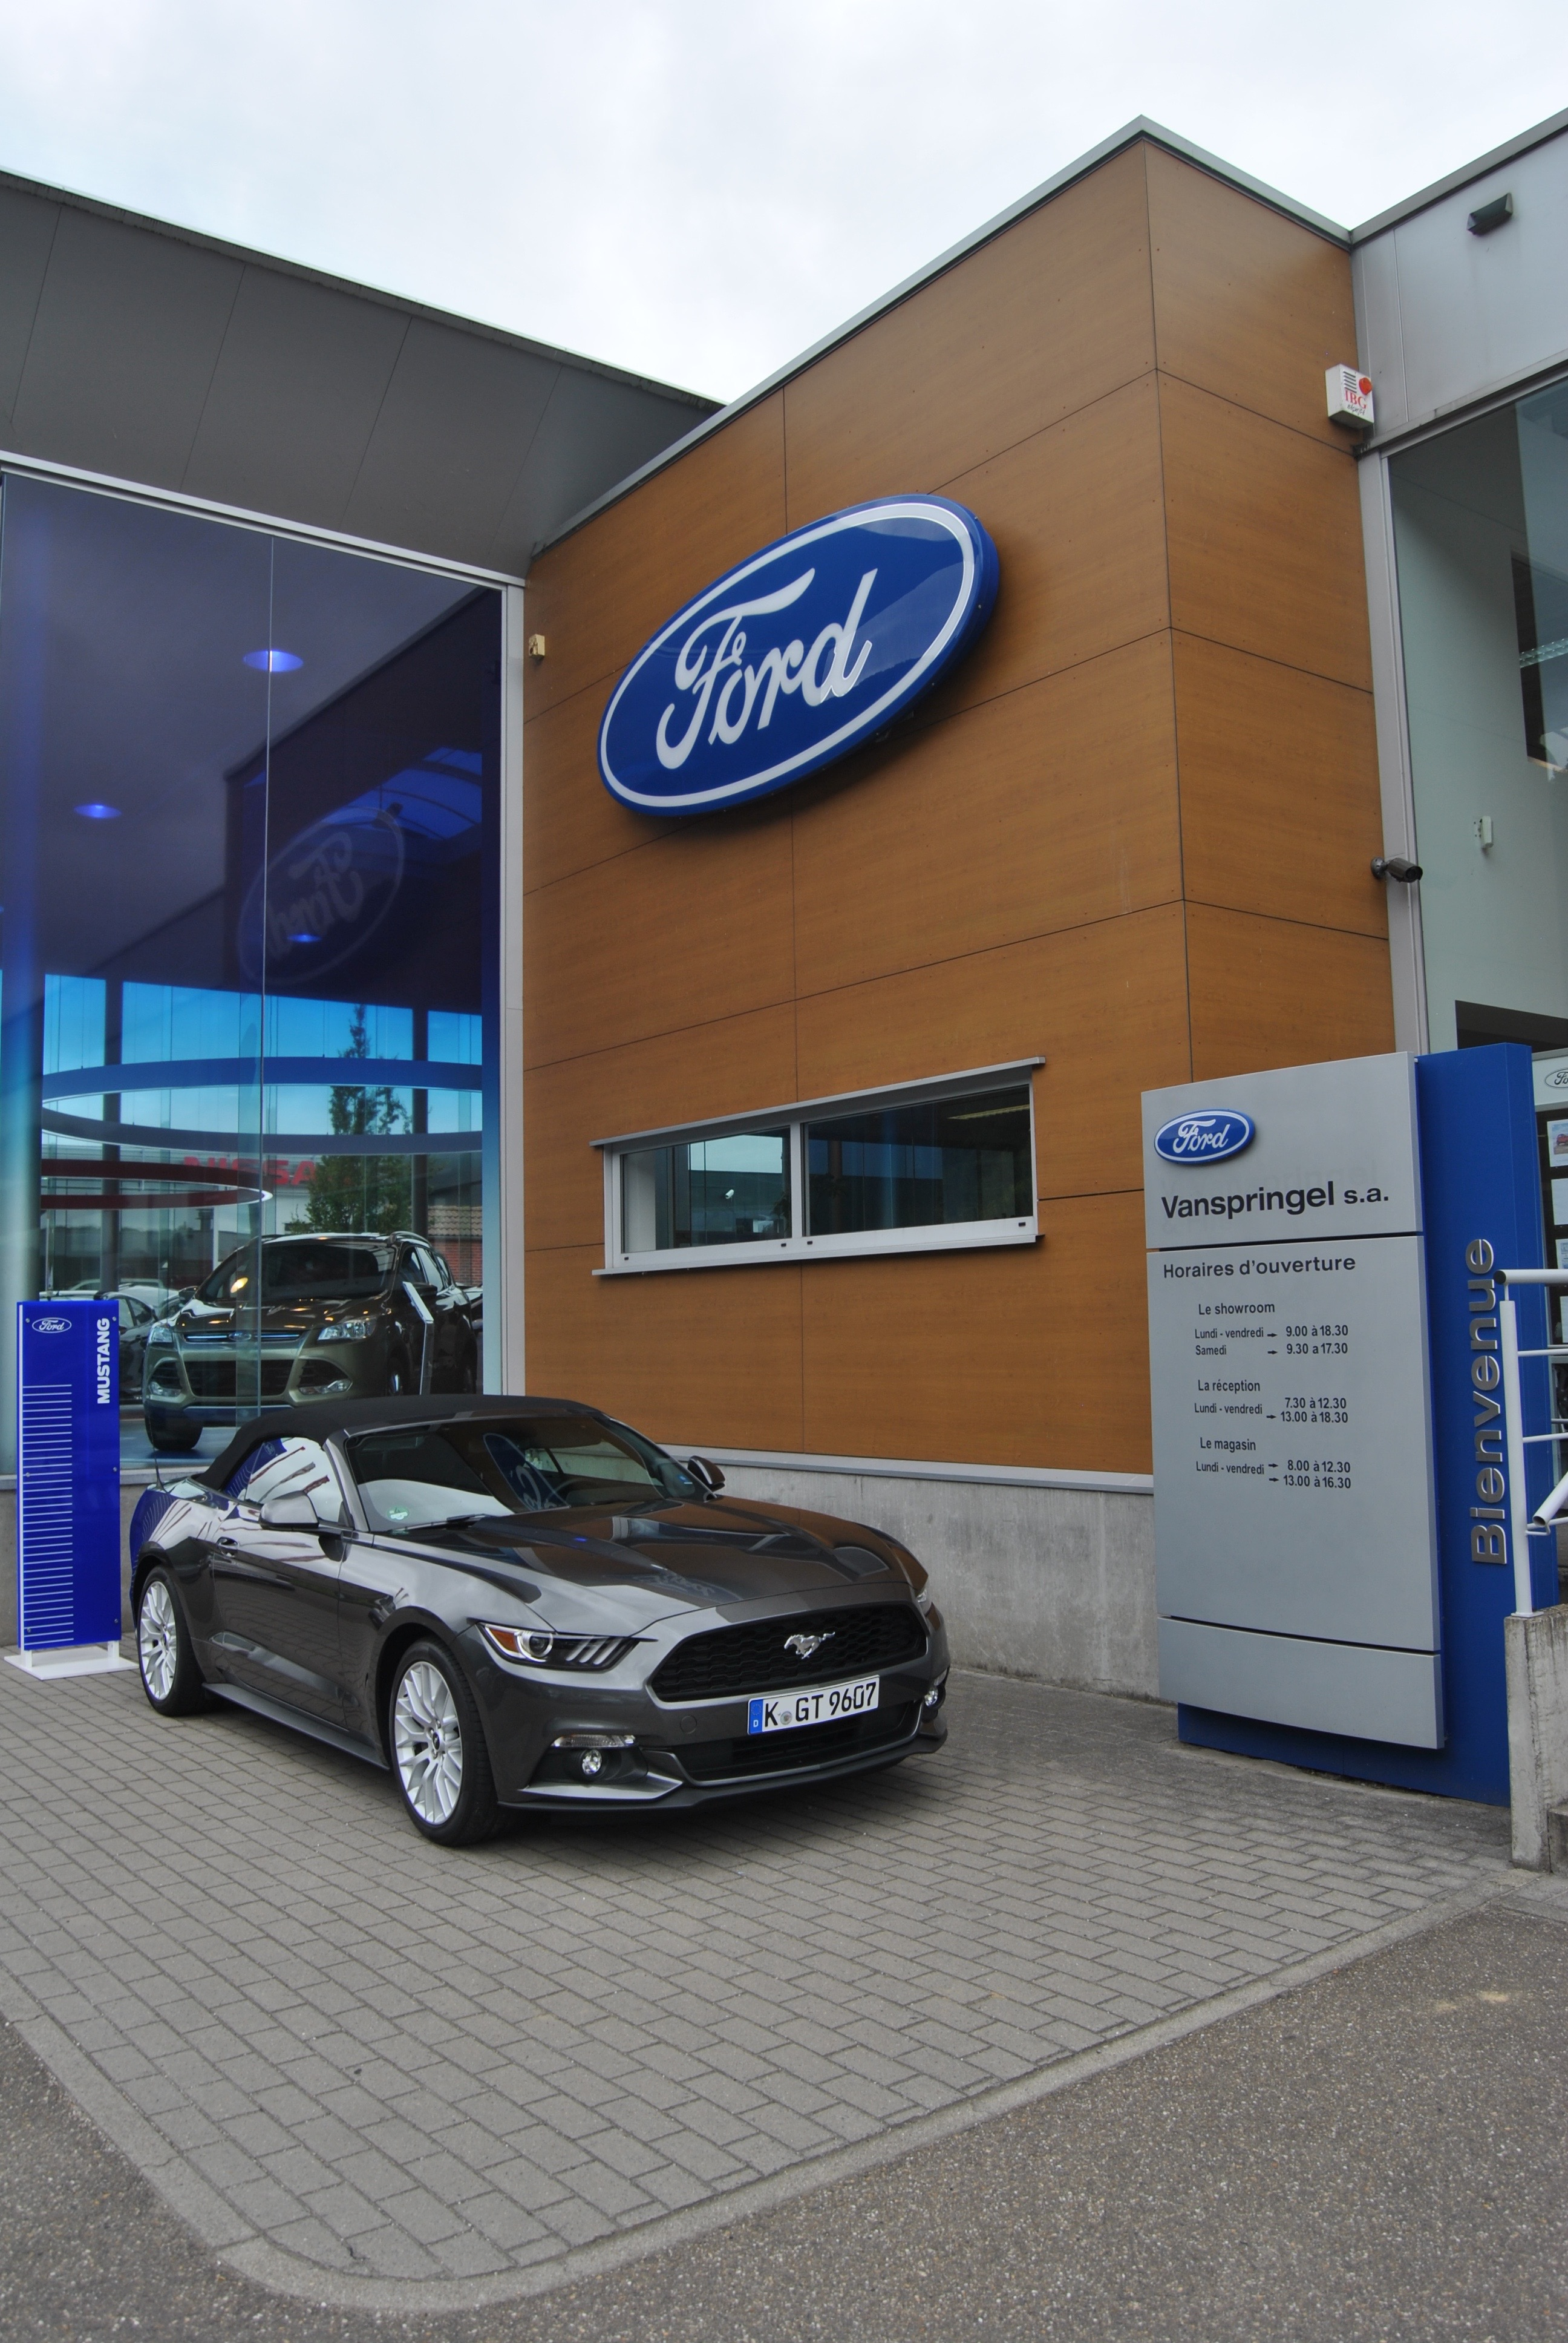 ontdek de eerste ford store van belgi link2fleet for a smarter mobility. Black Bedroom Furniture Sets. Home Design Ideas